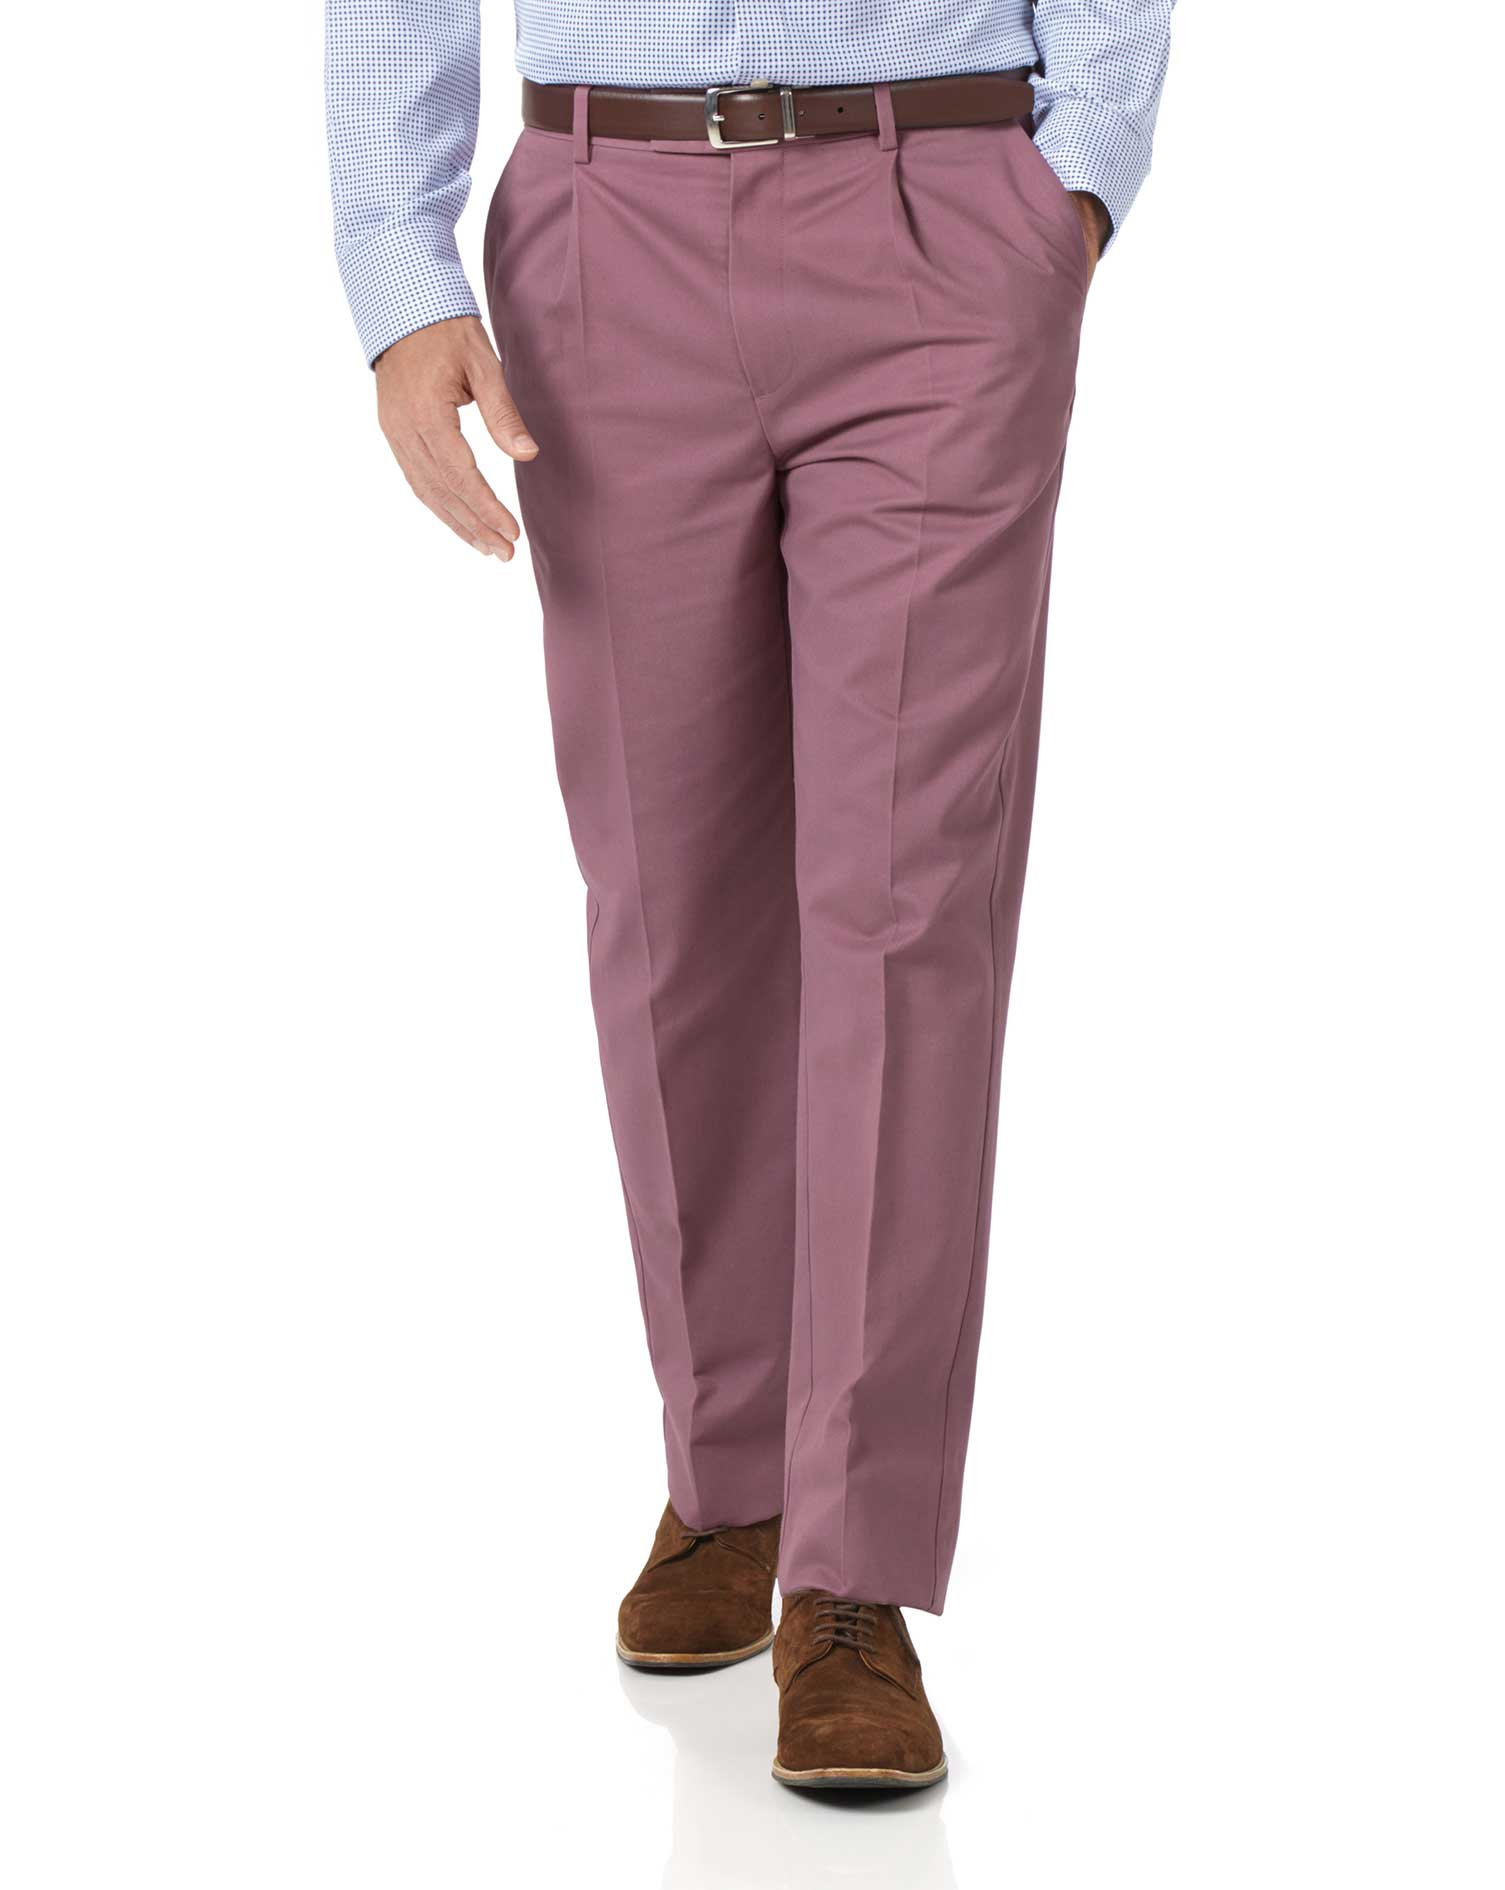 Light Pink Classic Fit Single Pleat Non-Iron Cotton Chino Trousers Size W38 L38 by Charles Tyrwhitt